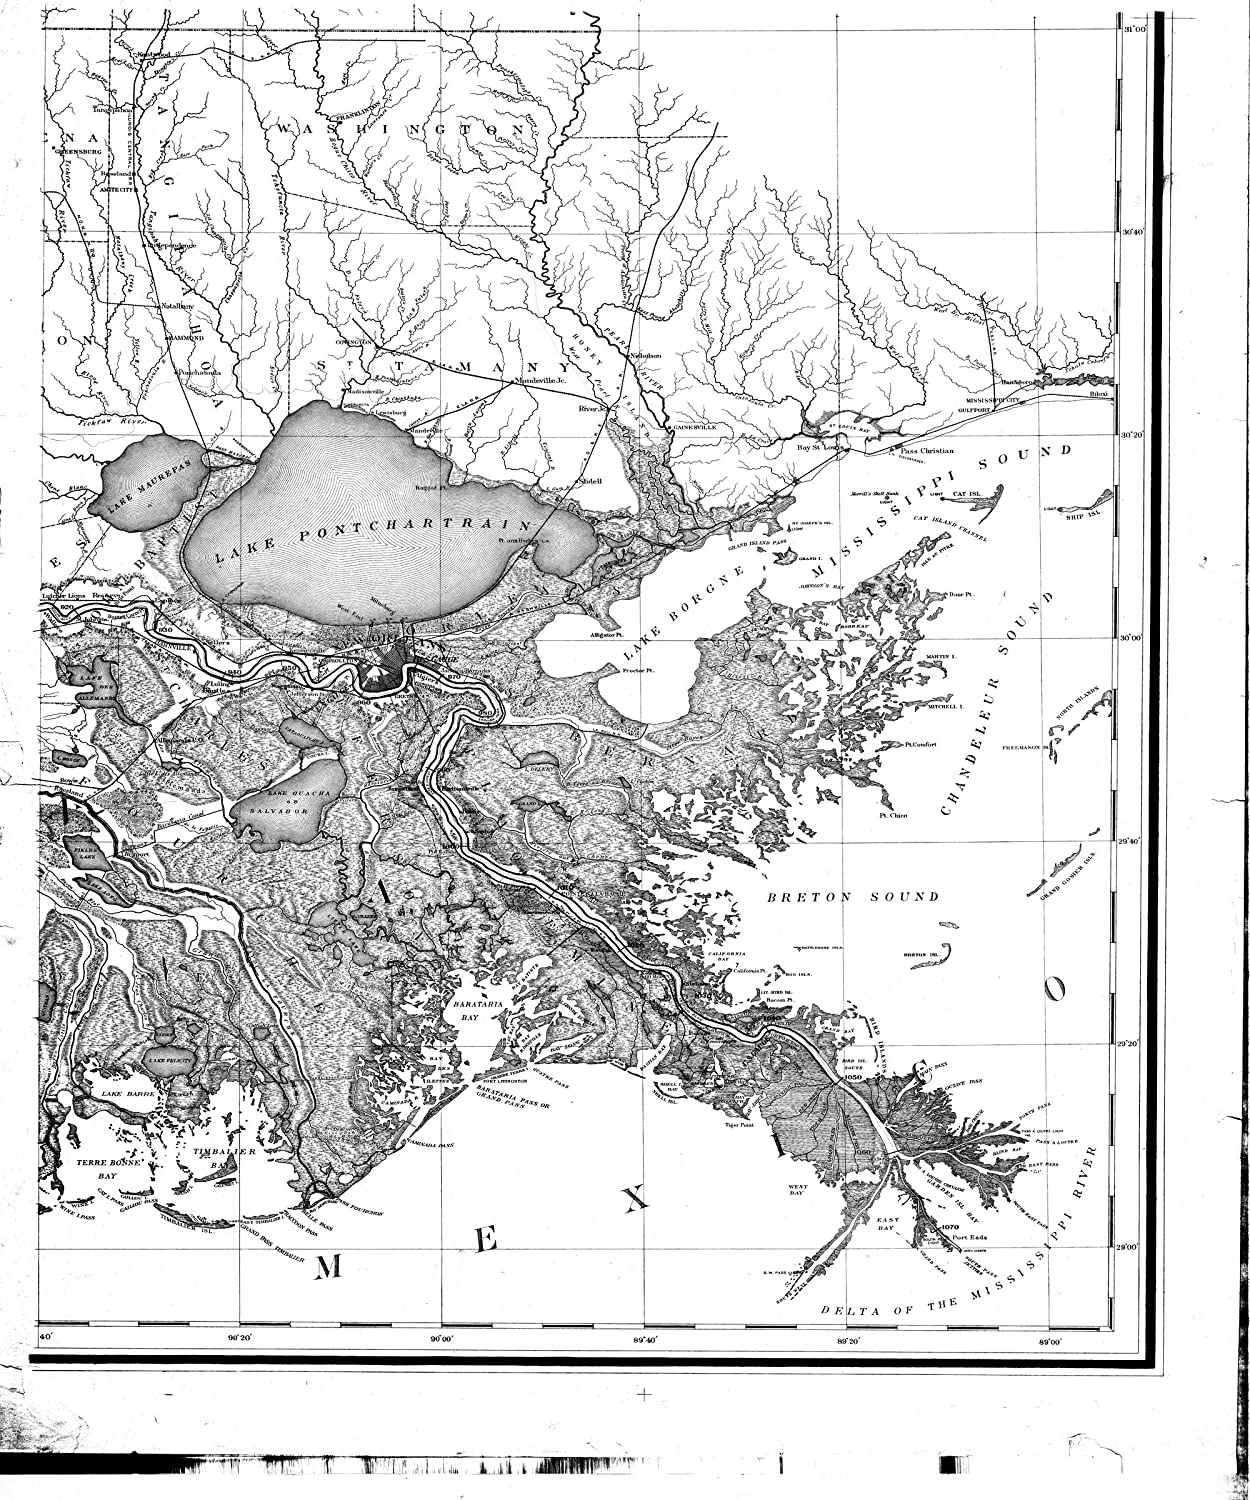 Amazon.com: Vintography 8 x 12 inch 1887 US Old Nautical map ...